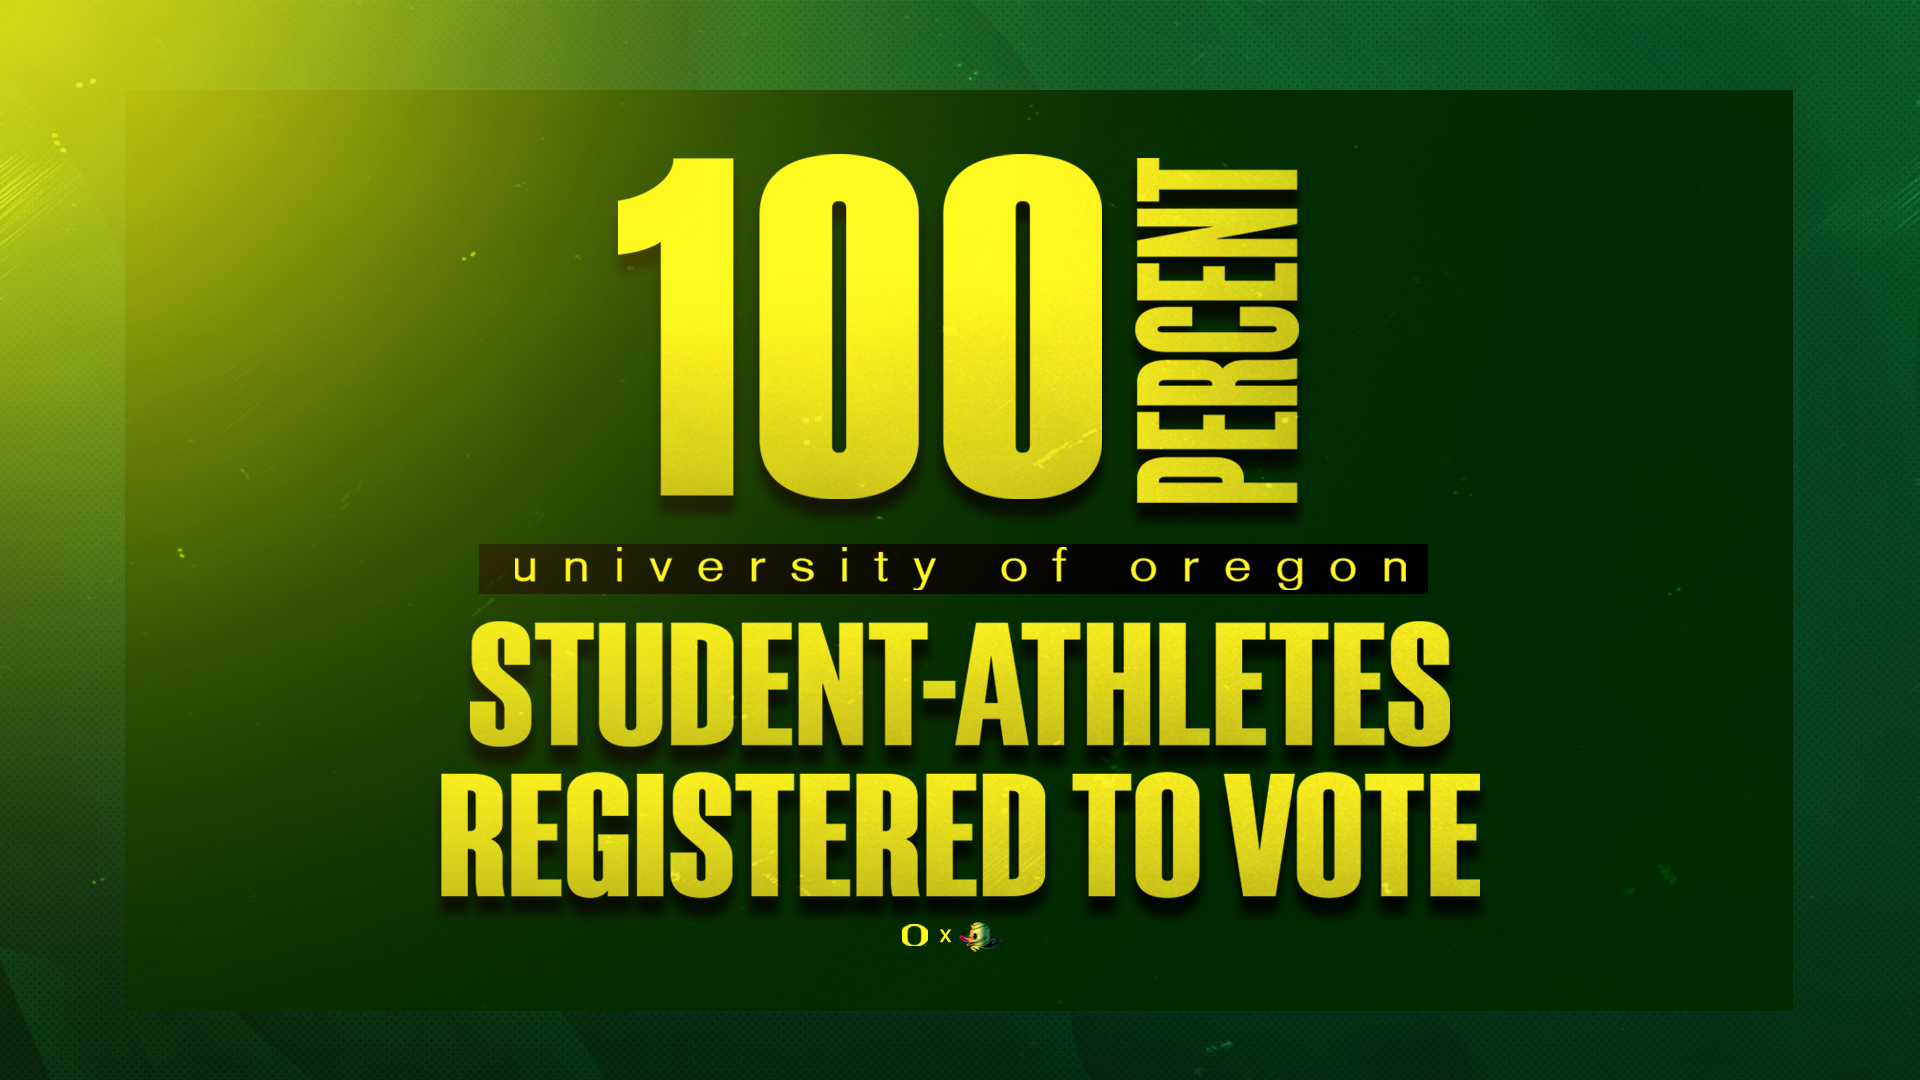 Ducks 'Keep It 100' To Mark Voter Registration Day